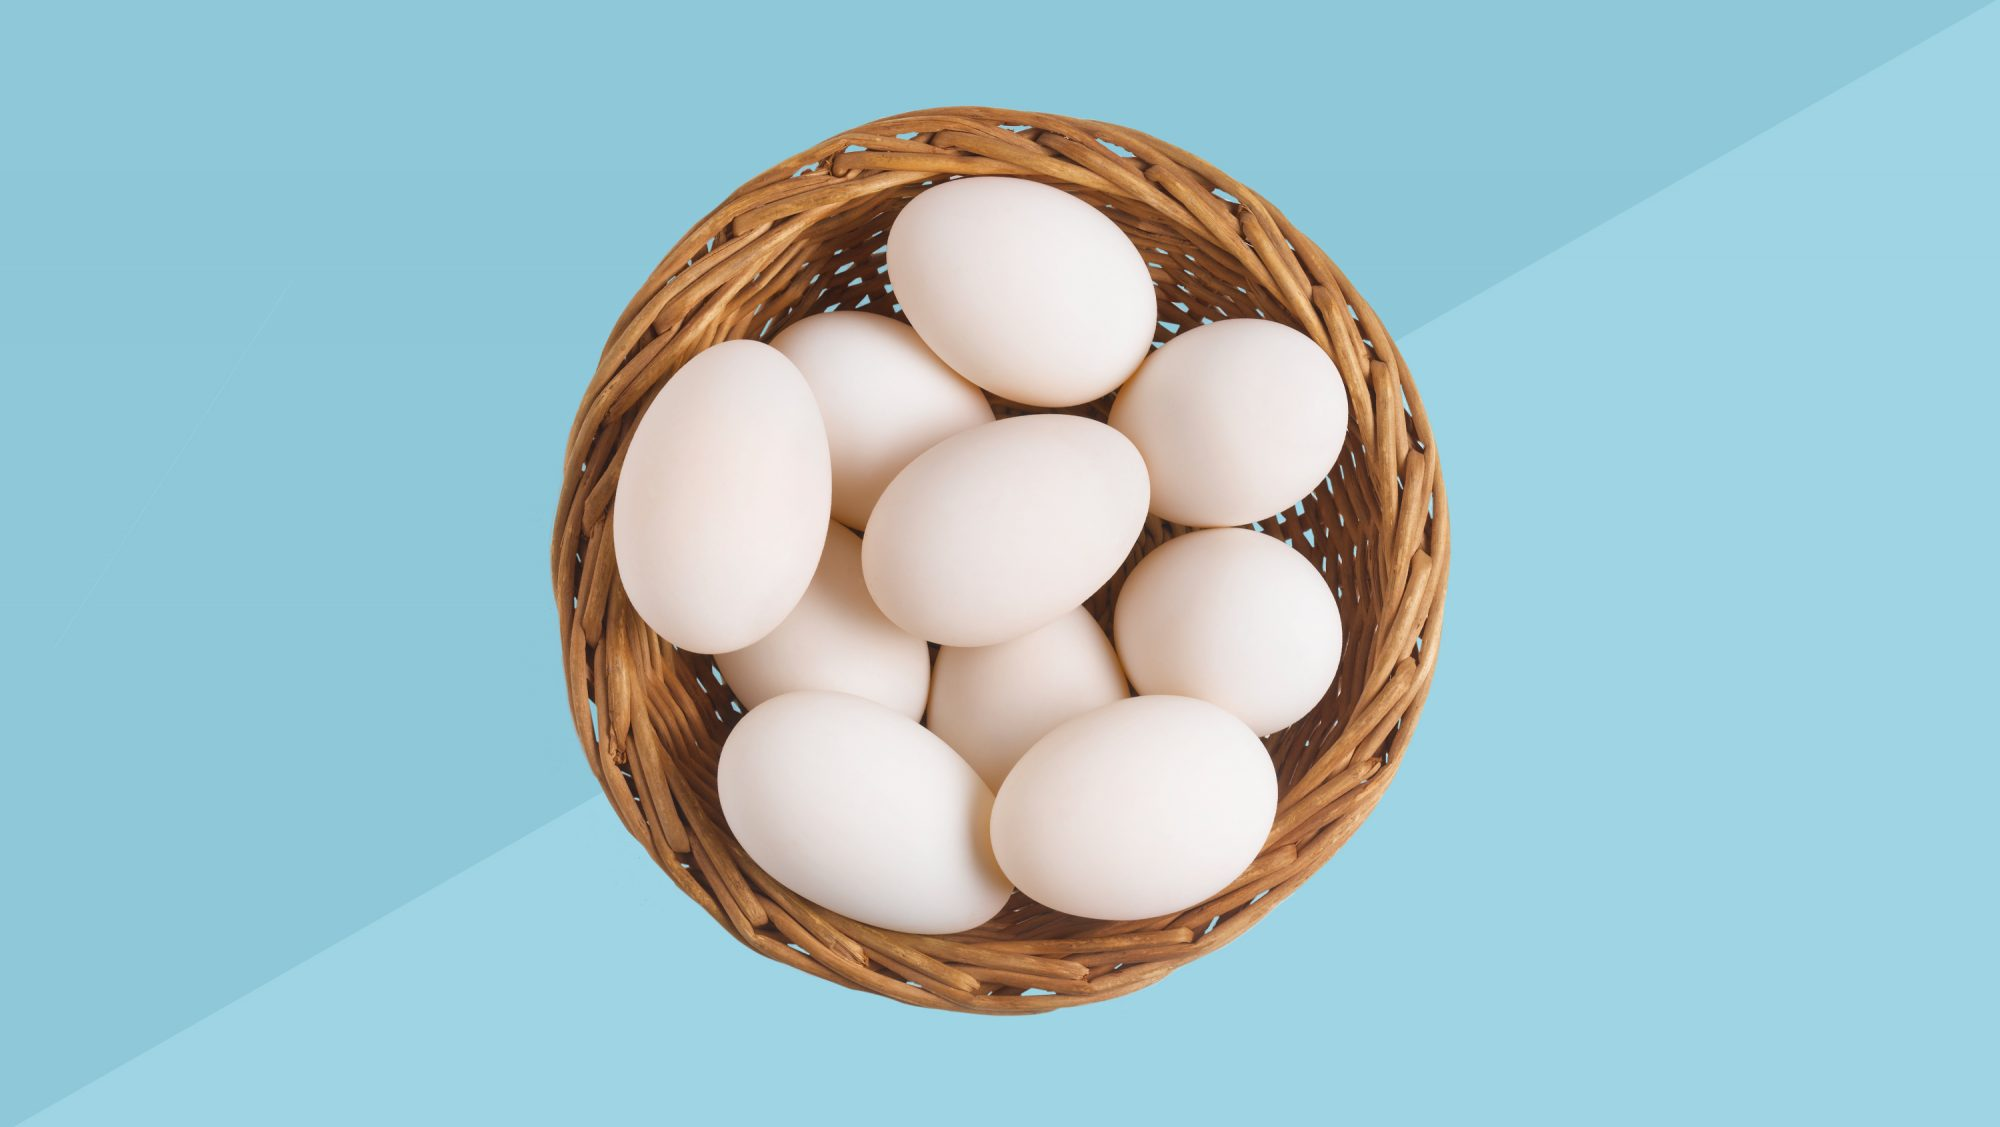 foods-not-to-freeze; bowl of eggs